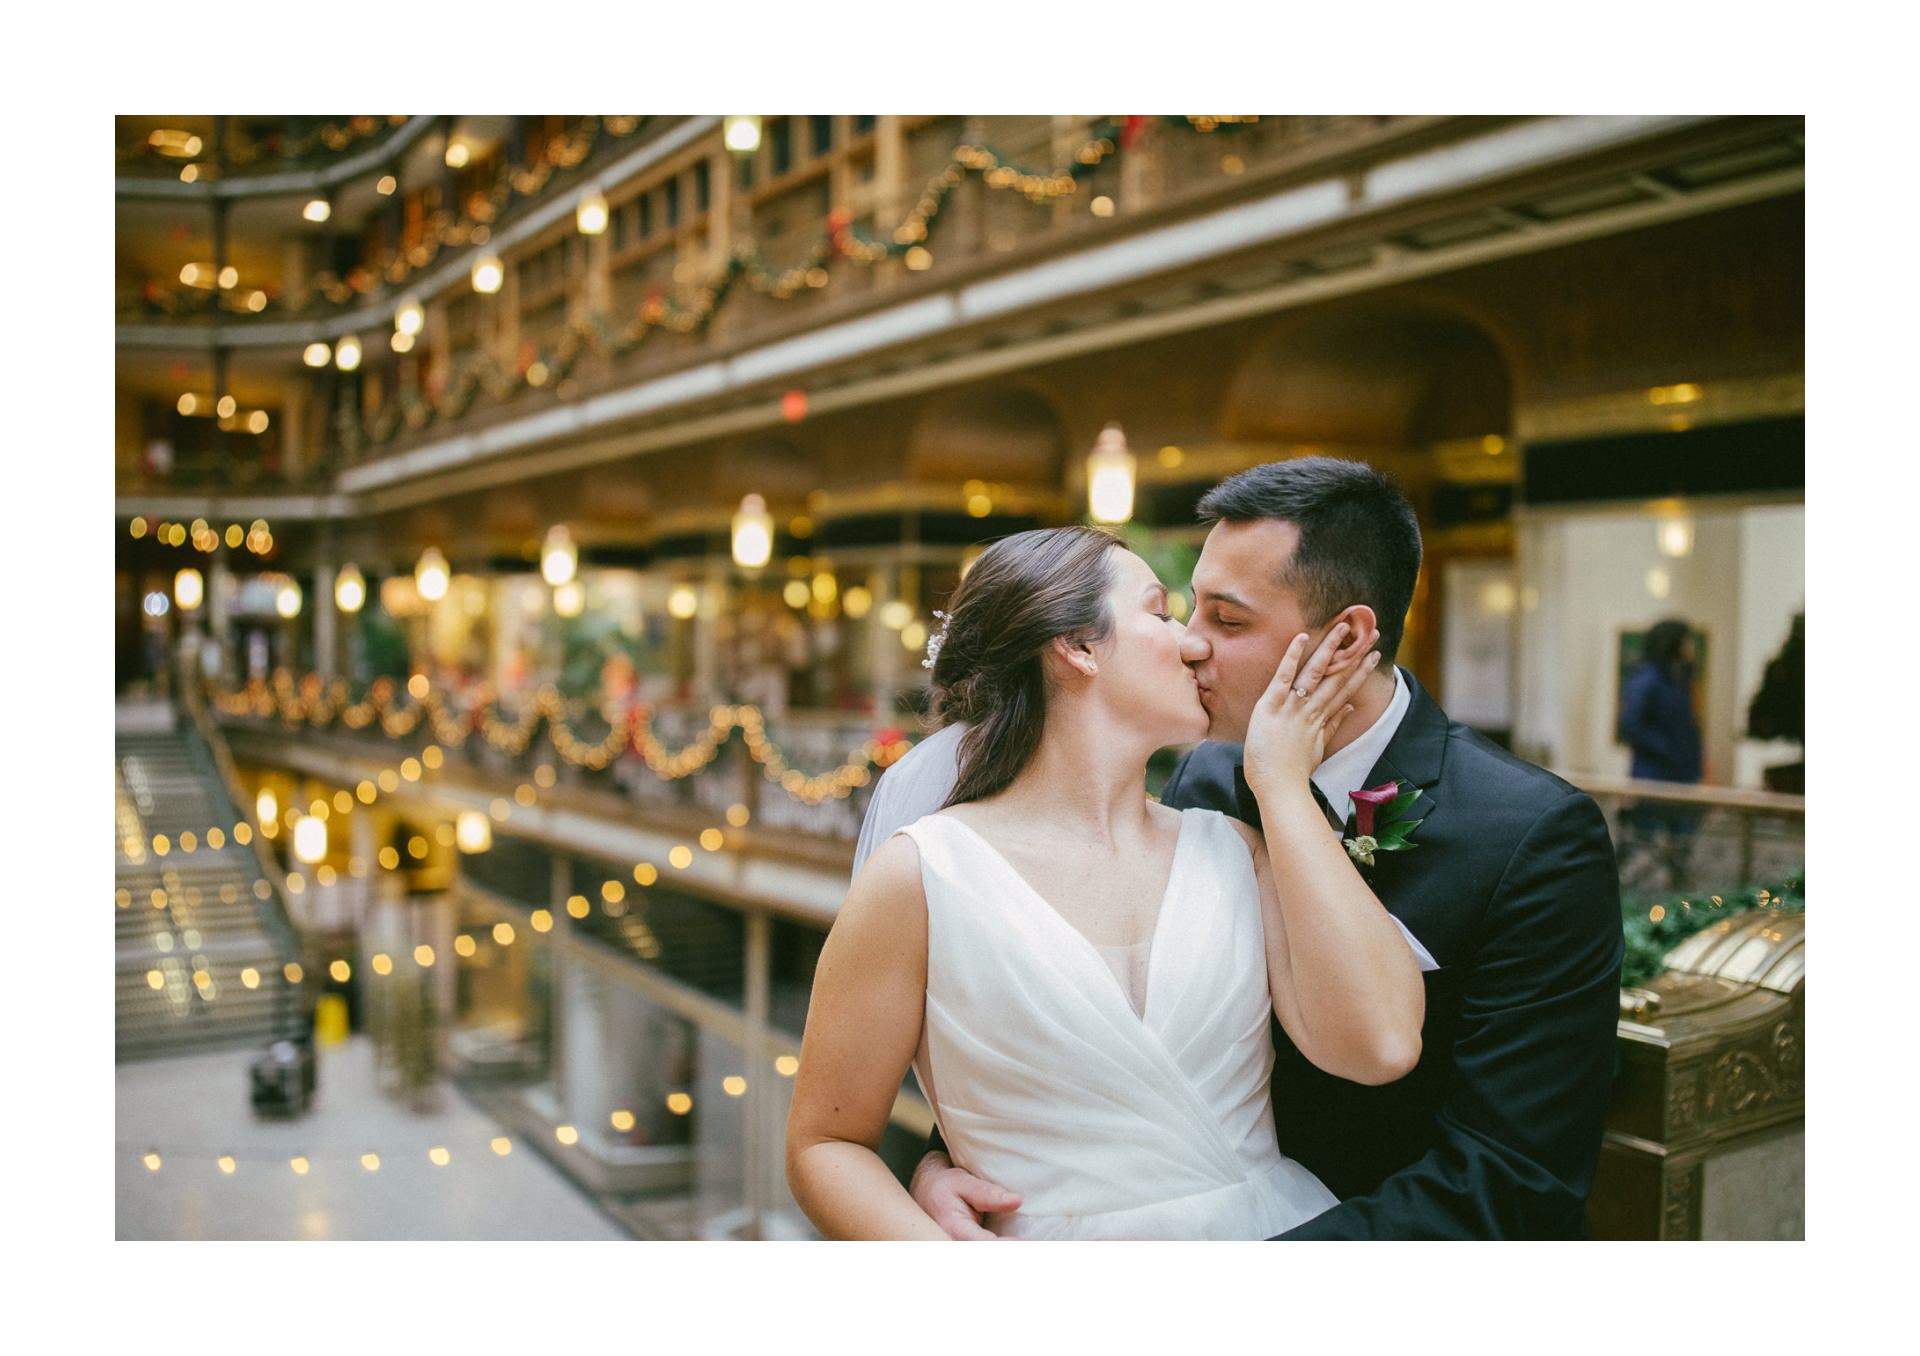 Hyatt Old Arcade Wedding Photographer in Cleveland 1 28.jpg